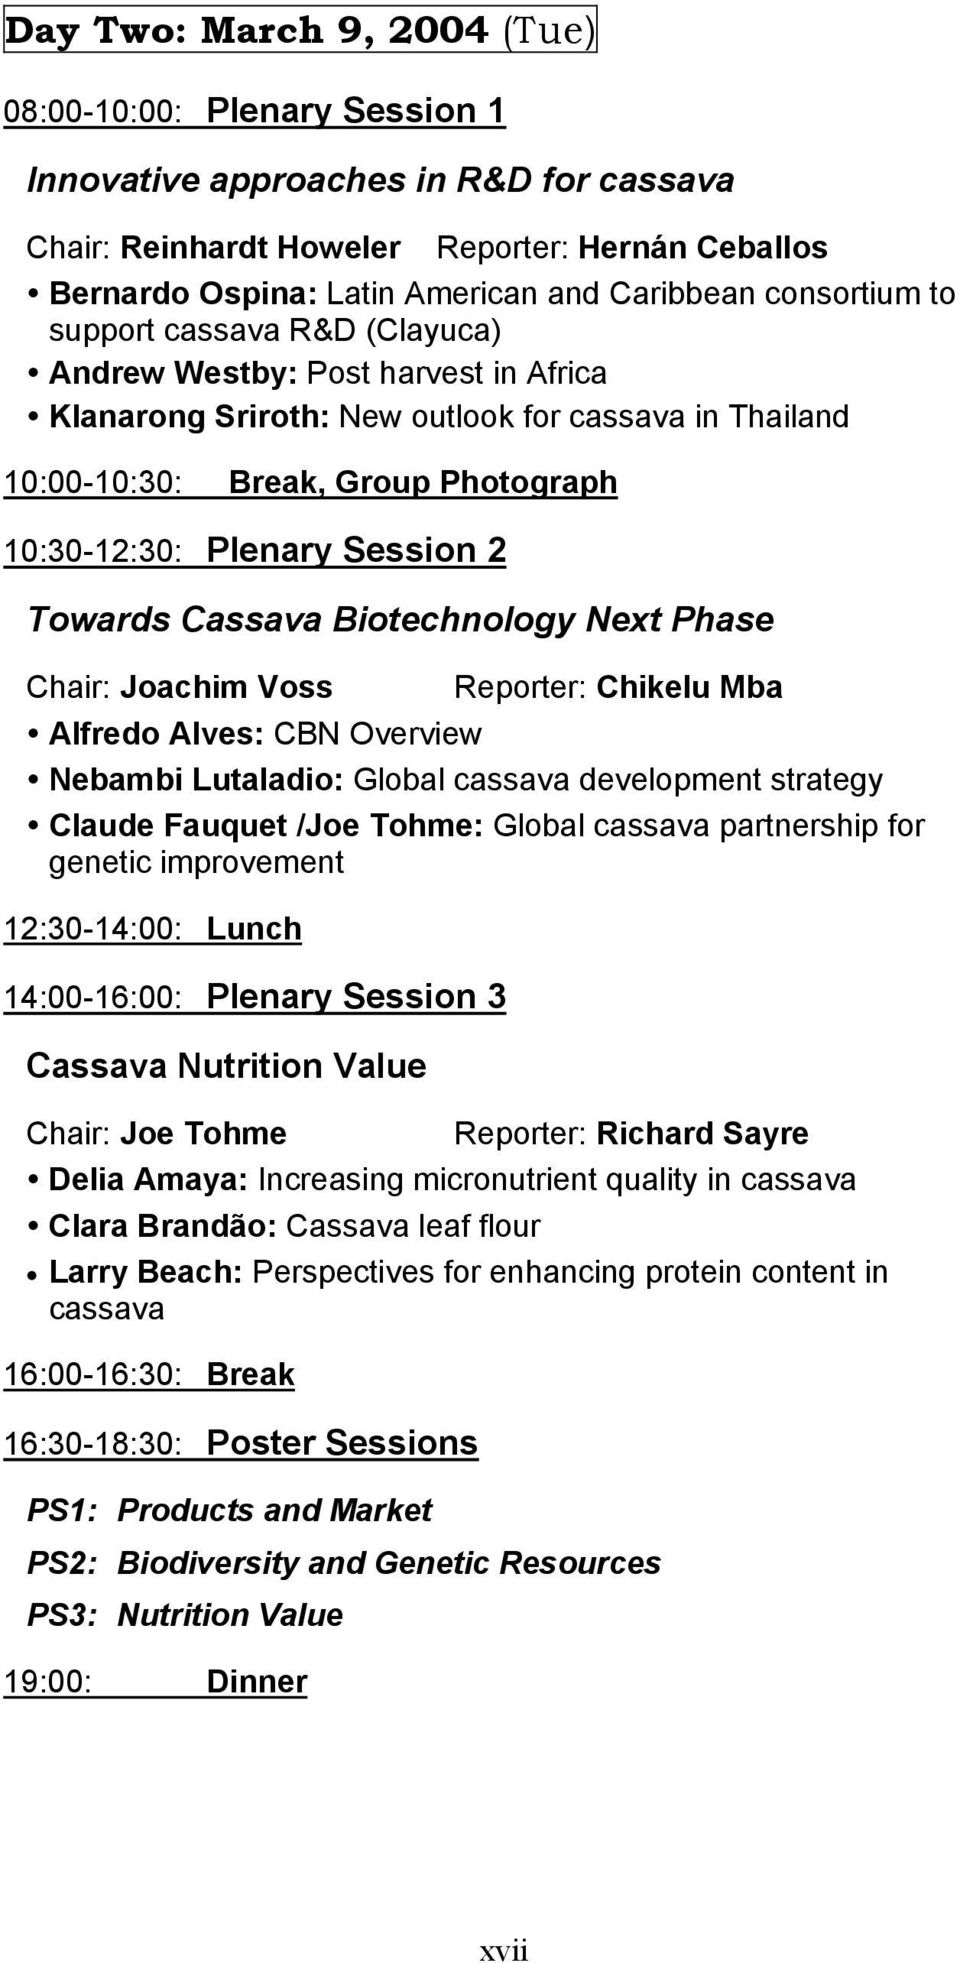 Session 2 Towards Cassava Biotechnology Next Phase Chair: Joachim Voss Reporter: Chikelu Mba Alfredo Alves: CBN Overview Nebambi Lutaladio: Global cassava development strategy Claude Fauquet /Joe